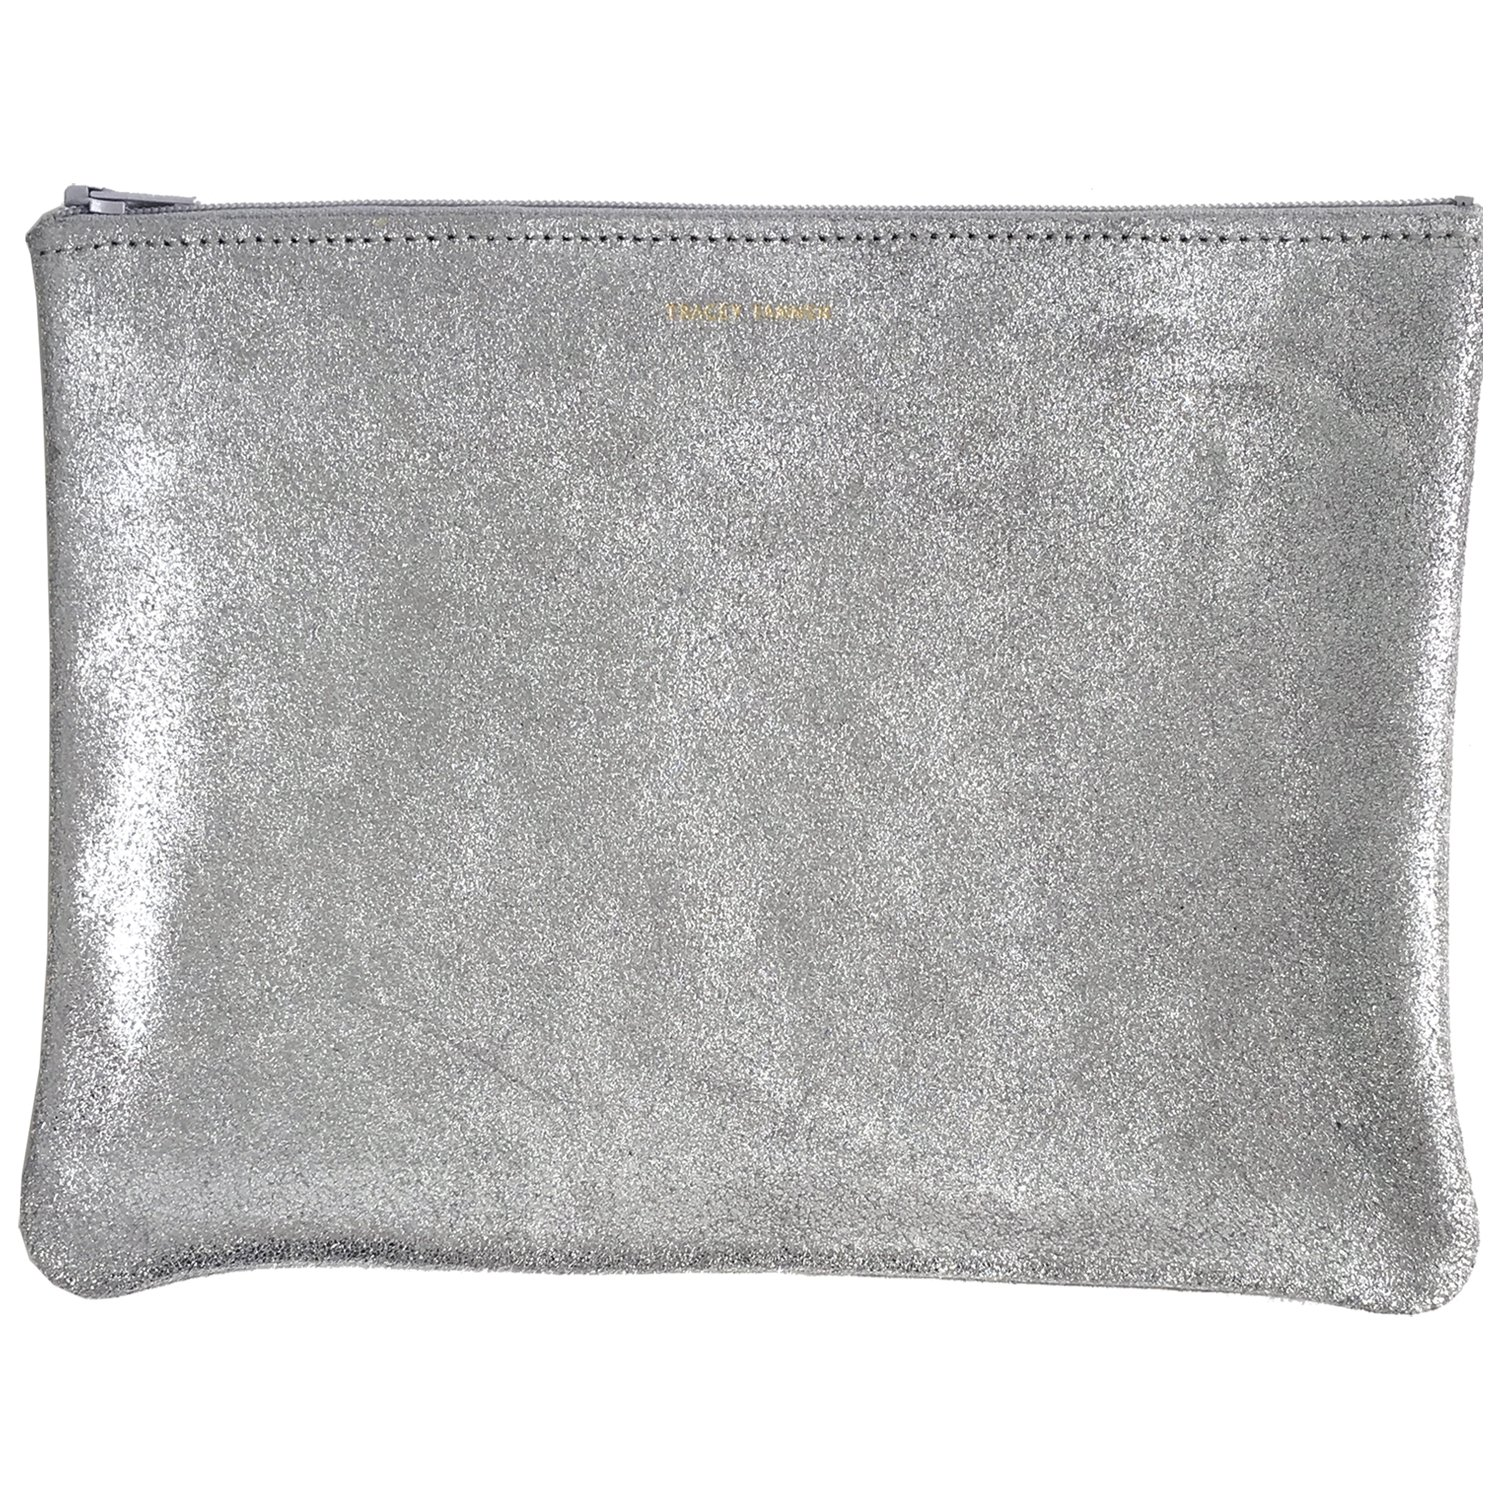 Tracey Tanner Large Zipper Top Pouch - Frost Sparkle